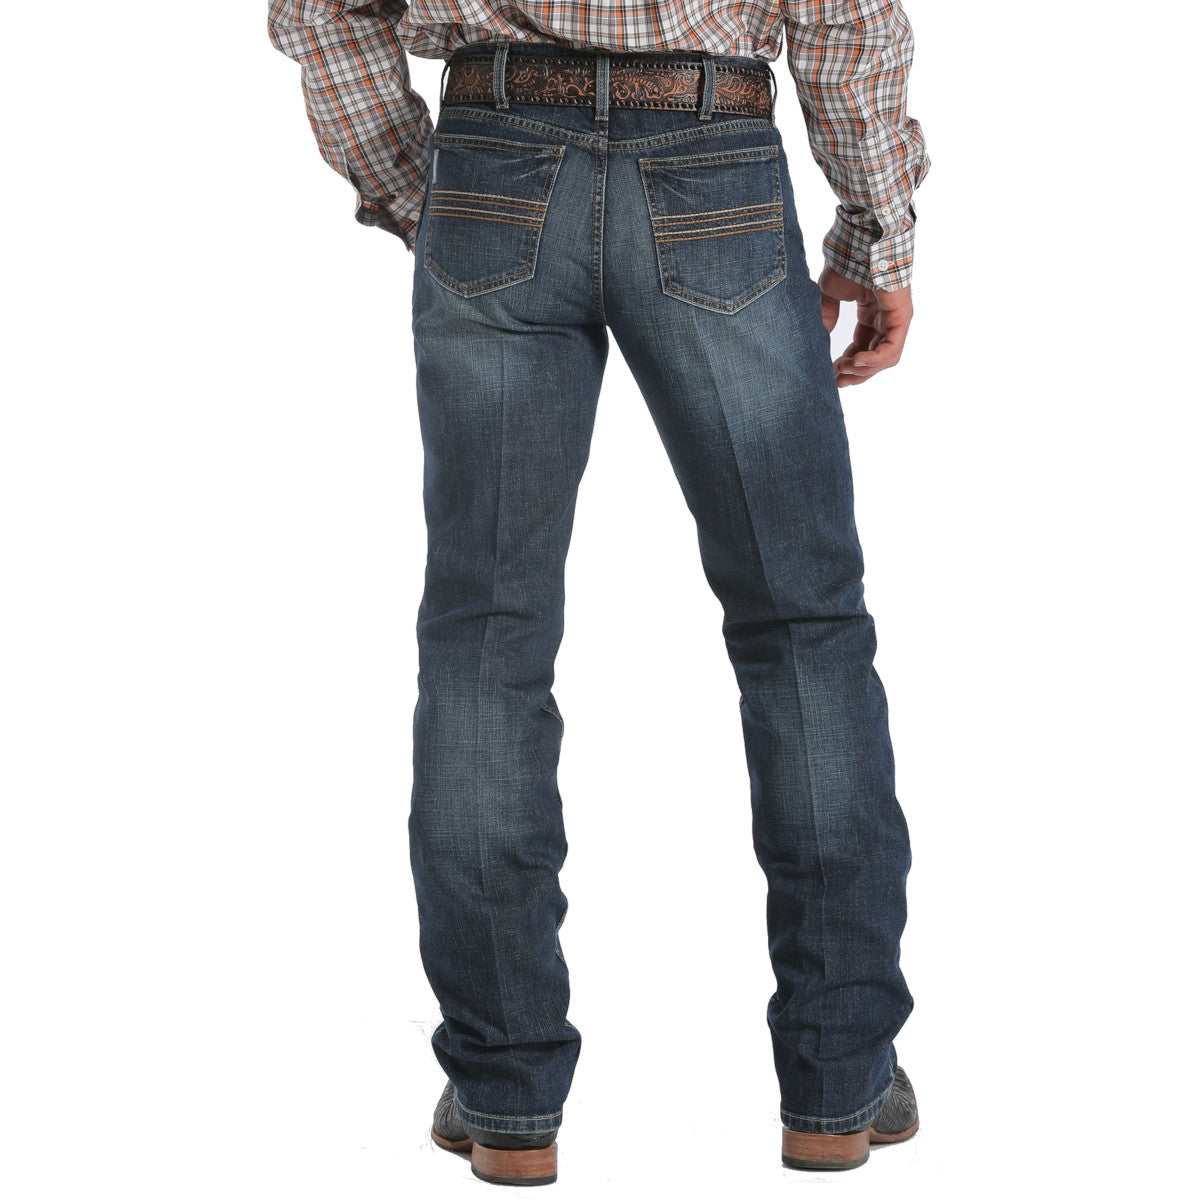 Cinch Men's Silver Label Mid Rise Slim Fit Straight Leg Performance Jeans